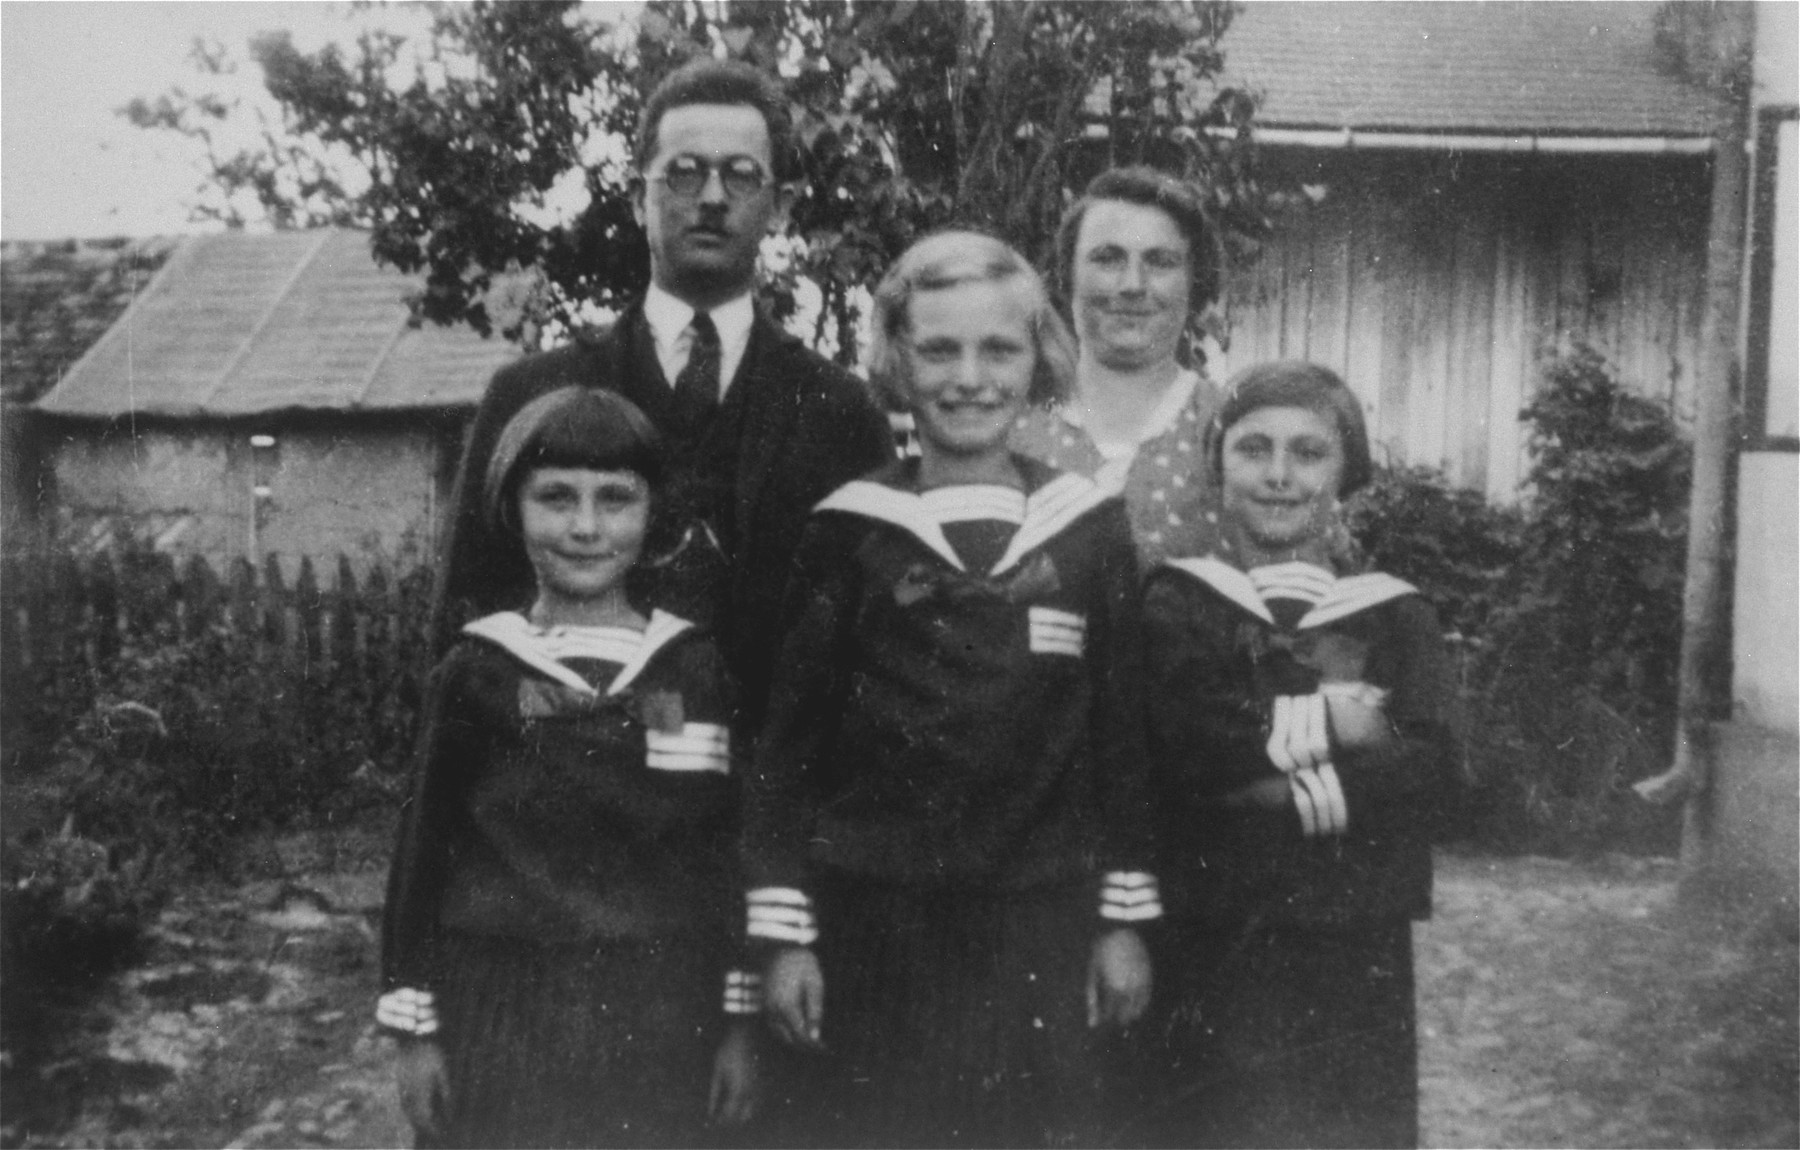 Portrait of the Petranker family while living in the Niemiecka Kolonia (German Colony).  Pictured in the back row, from left to right, are; David and Frieda Petranker.  In the front row, from left to right, are: Celia, Pepka and Amalie Petranker.